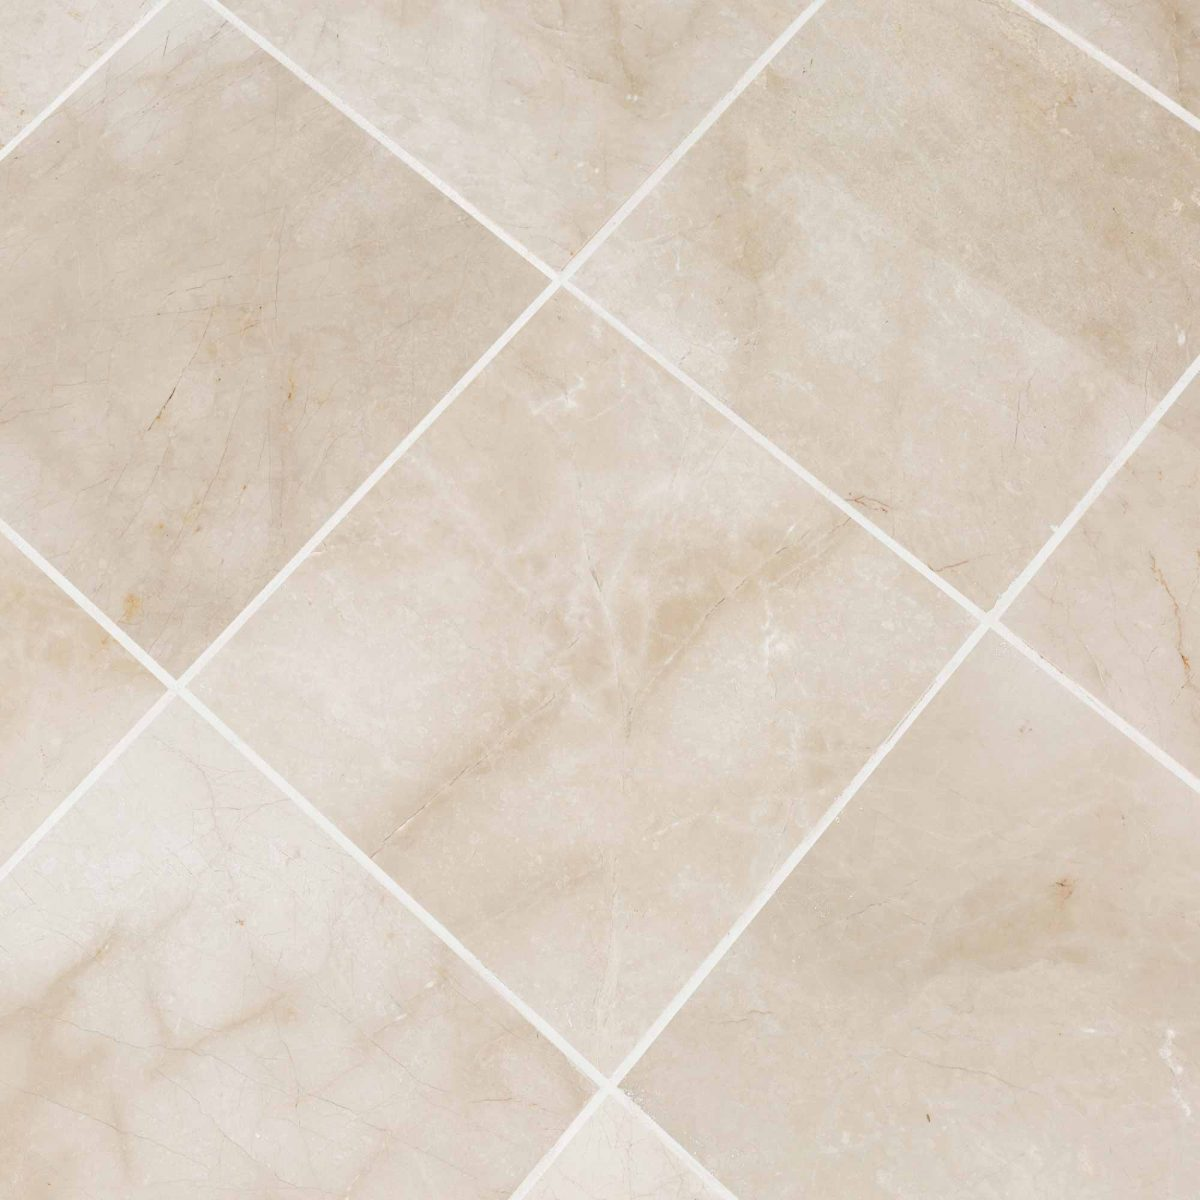 Colossae Cream Marble Tiles